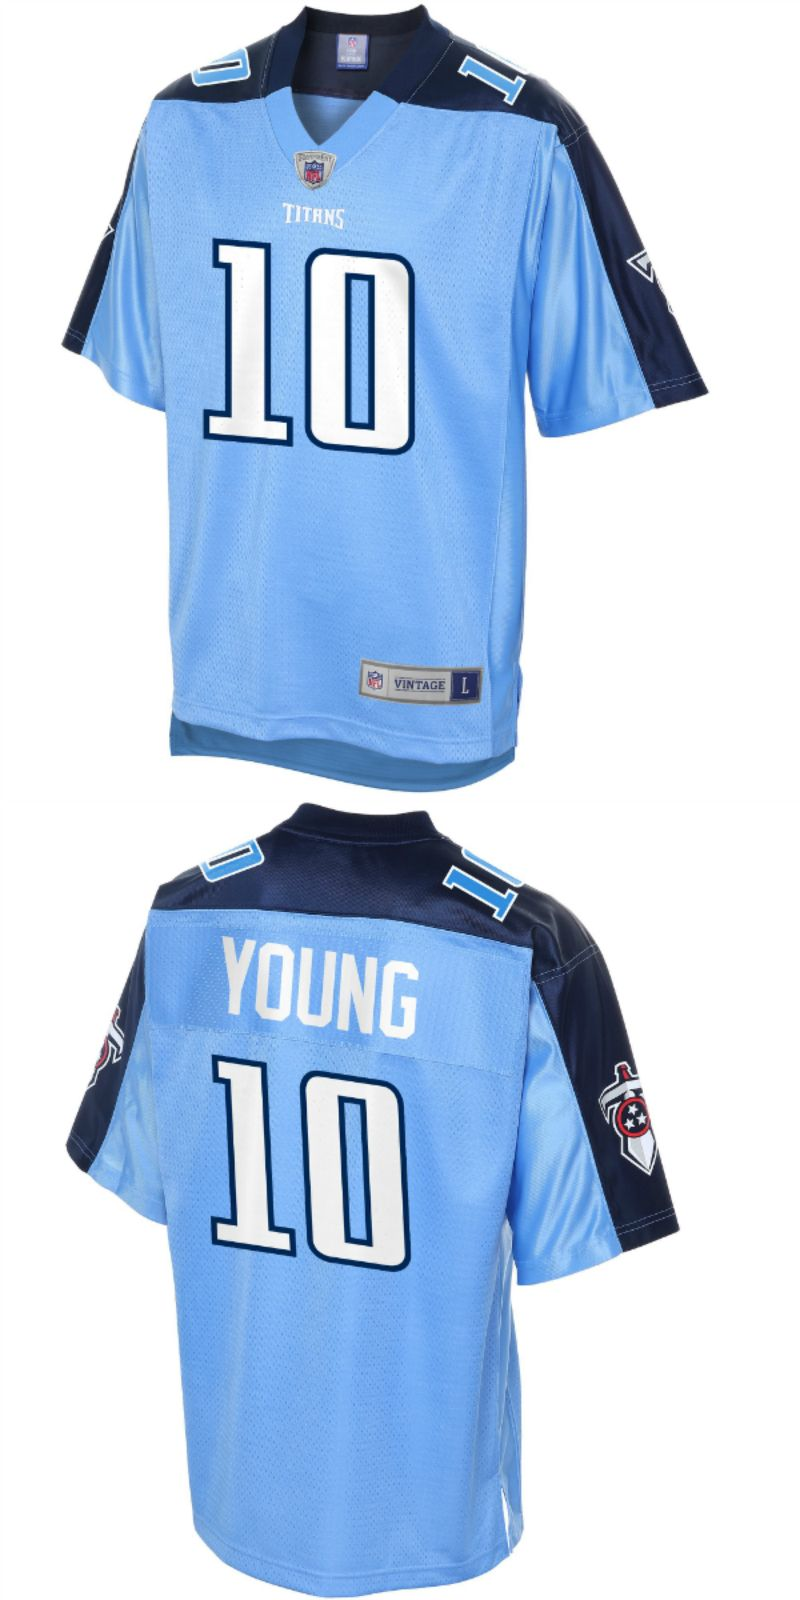 f8280a0d2 UP TO 70% OFF. Vince Young Tennessee Titans NFL Pro Line Retired ...